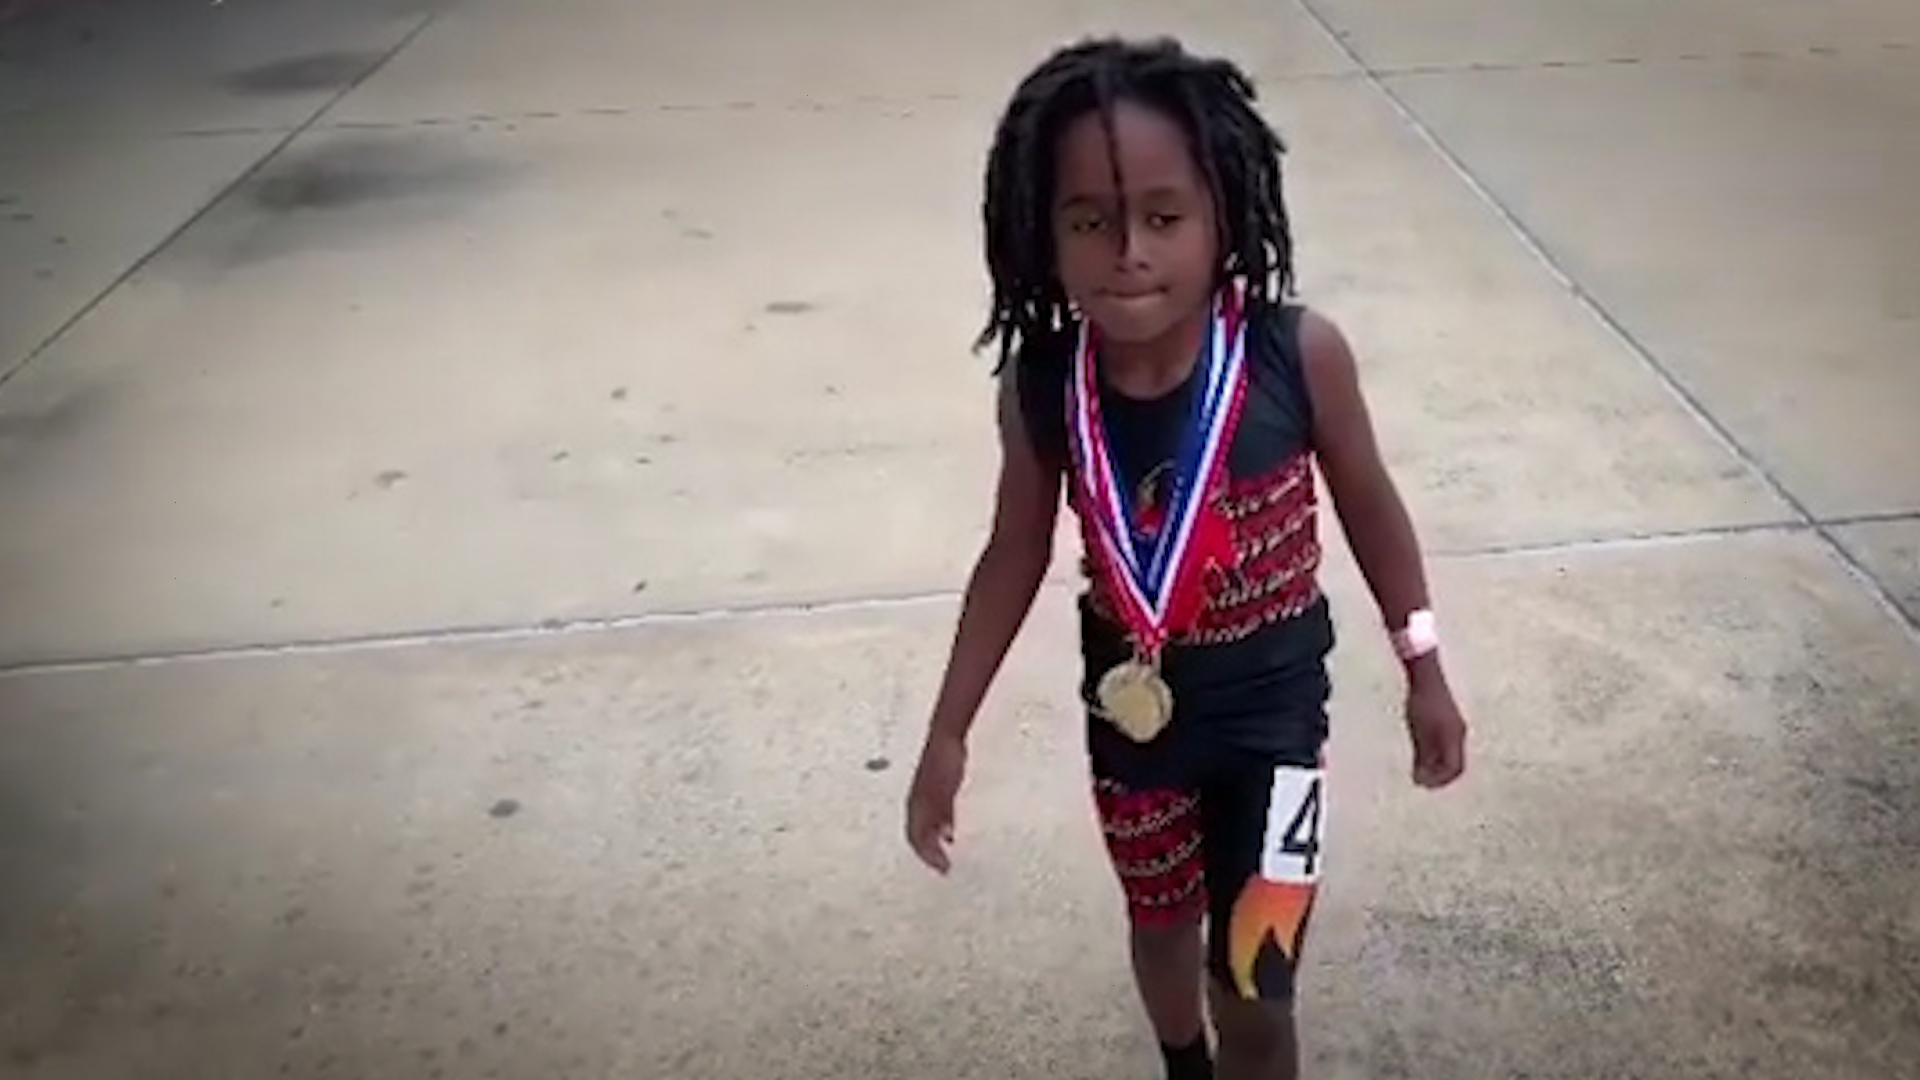 Meet the 7-year-old who's way faster than you